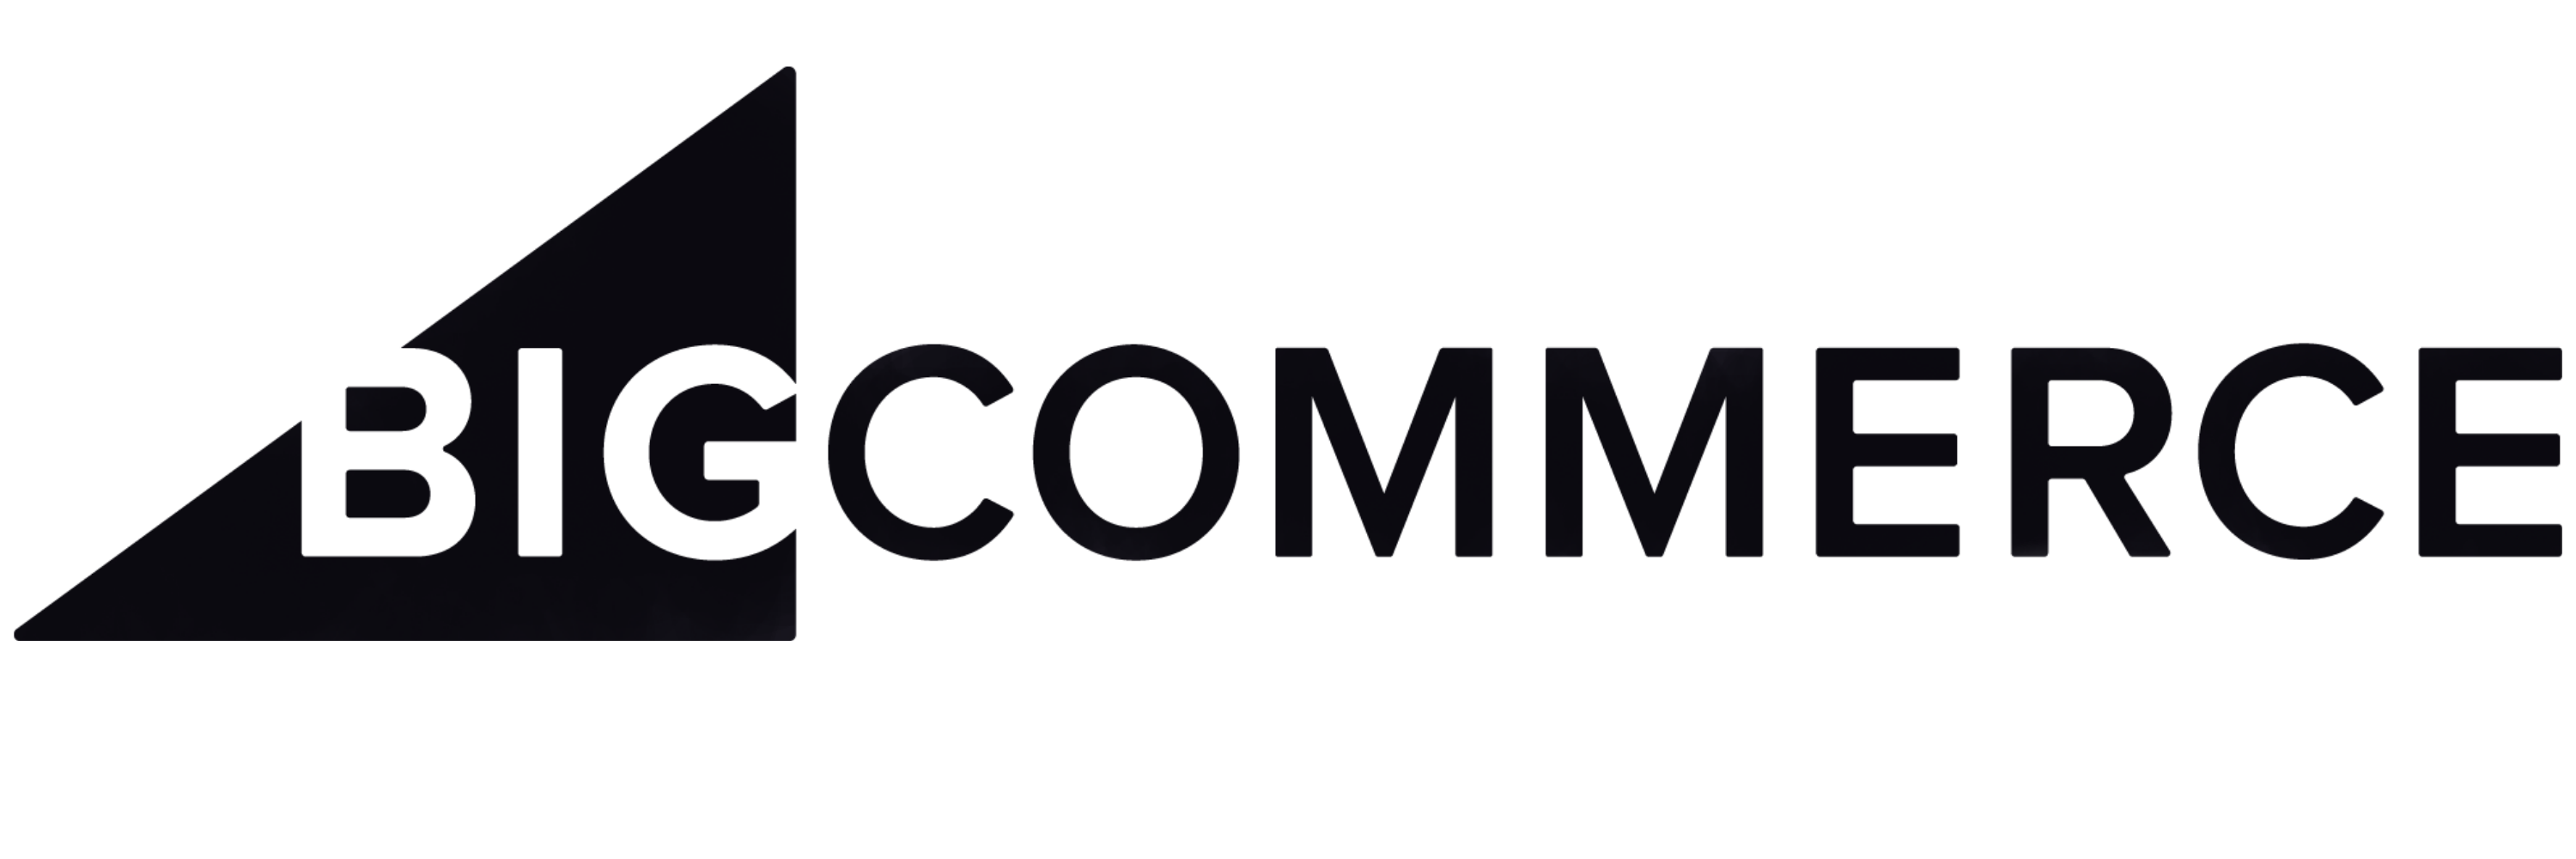 logotipo do bigcommerce